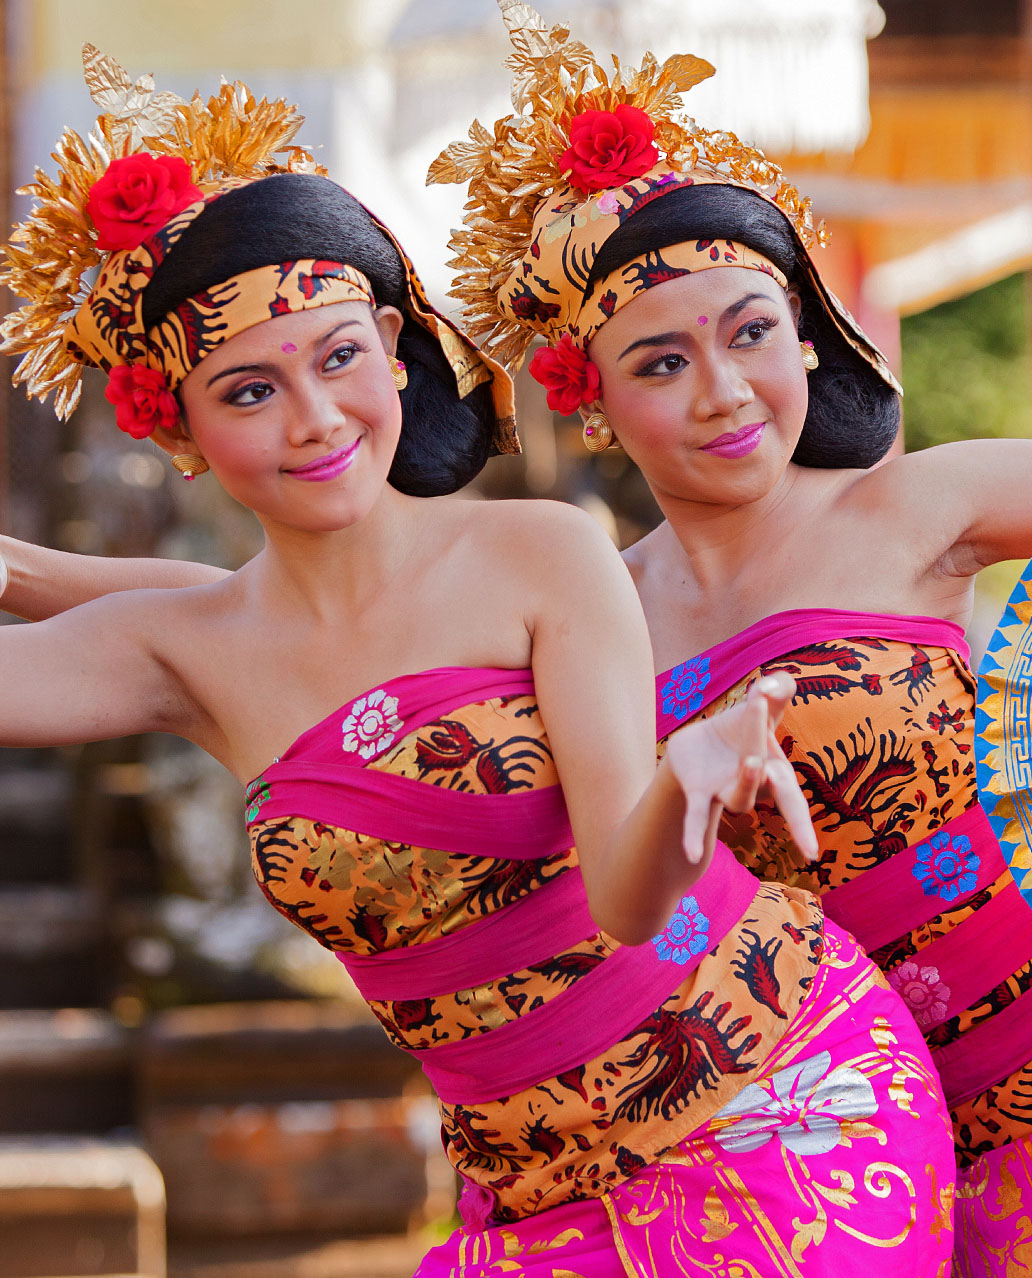 Cheap Flights To Denpasar Bali Round Trip Airfares For